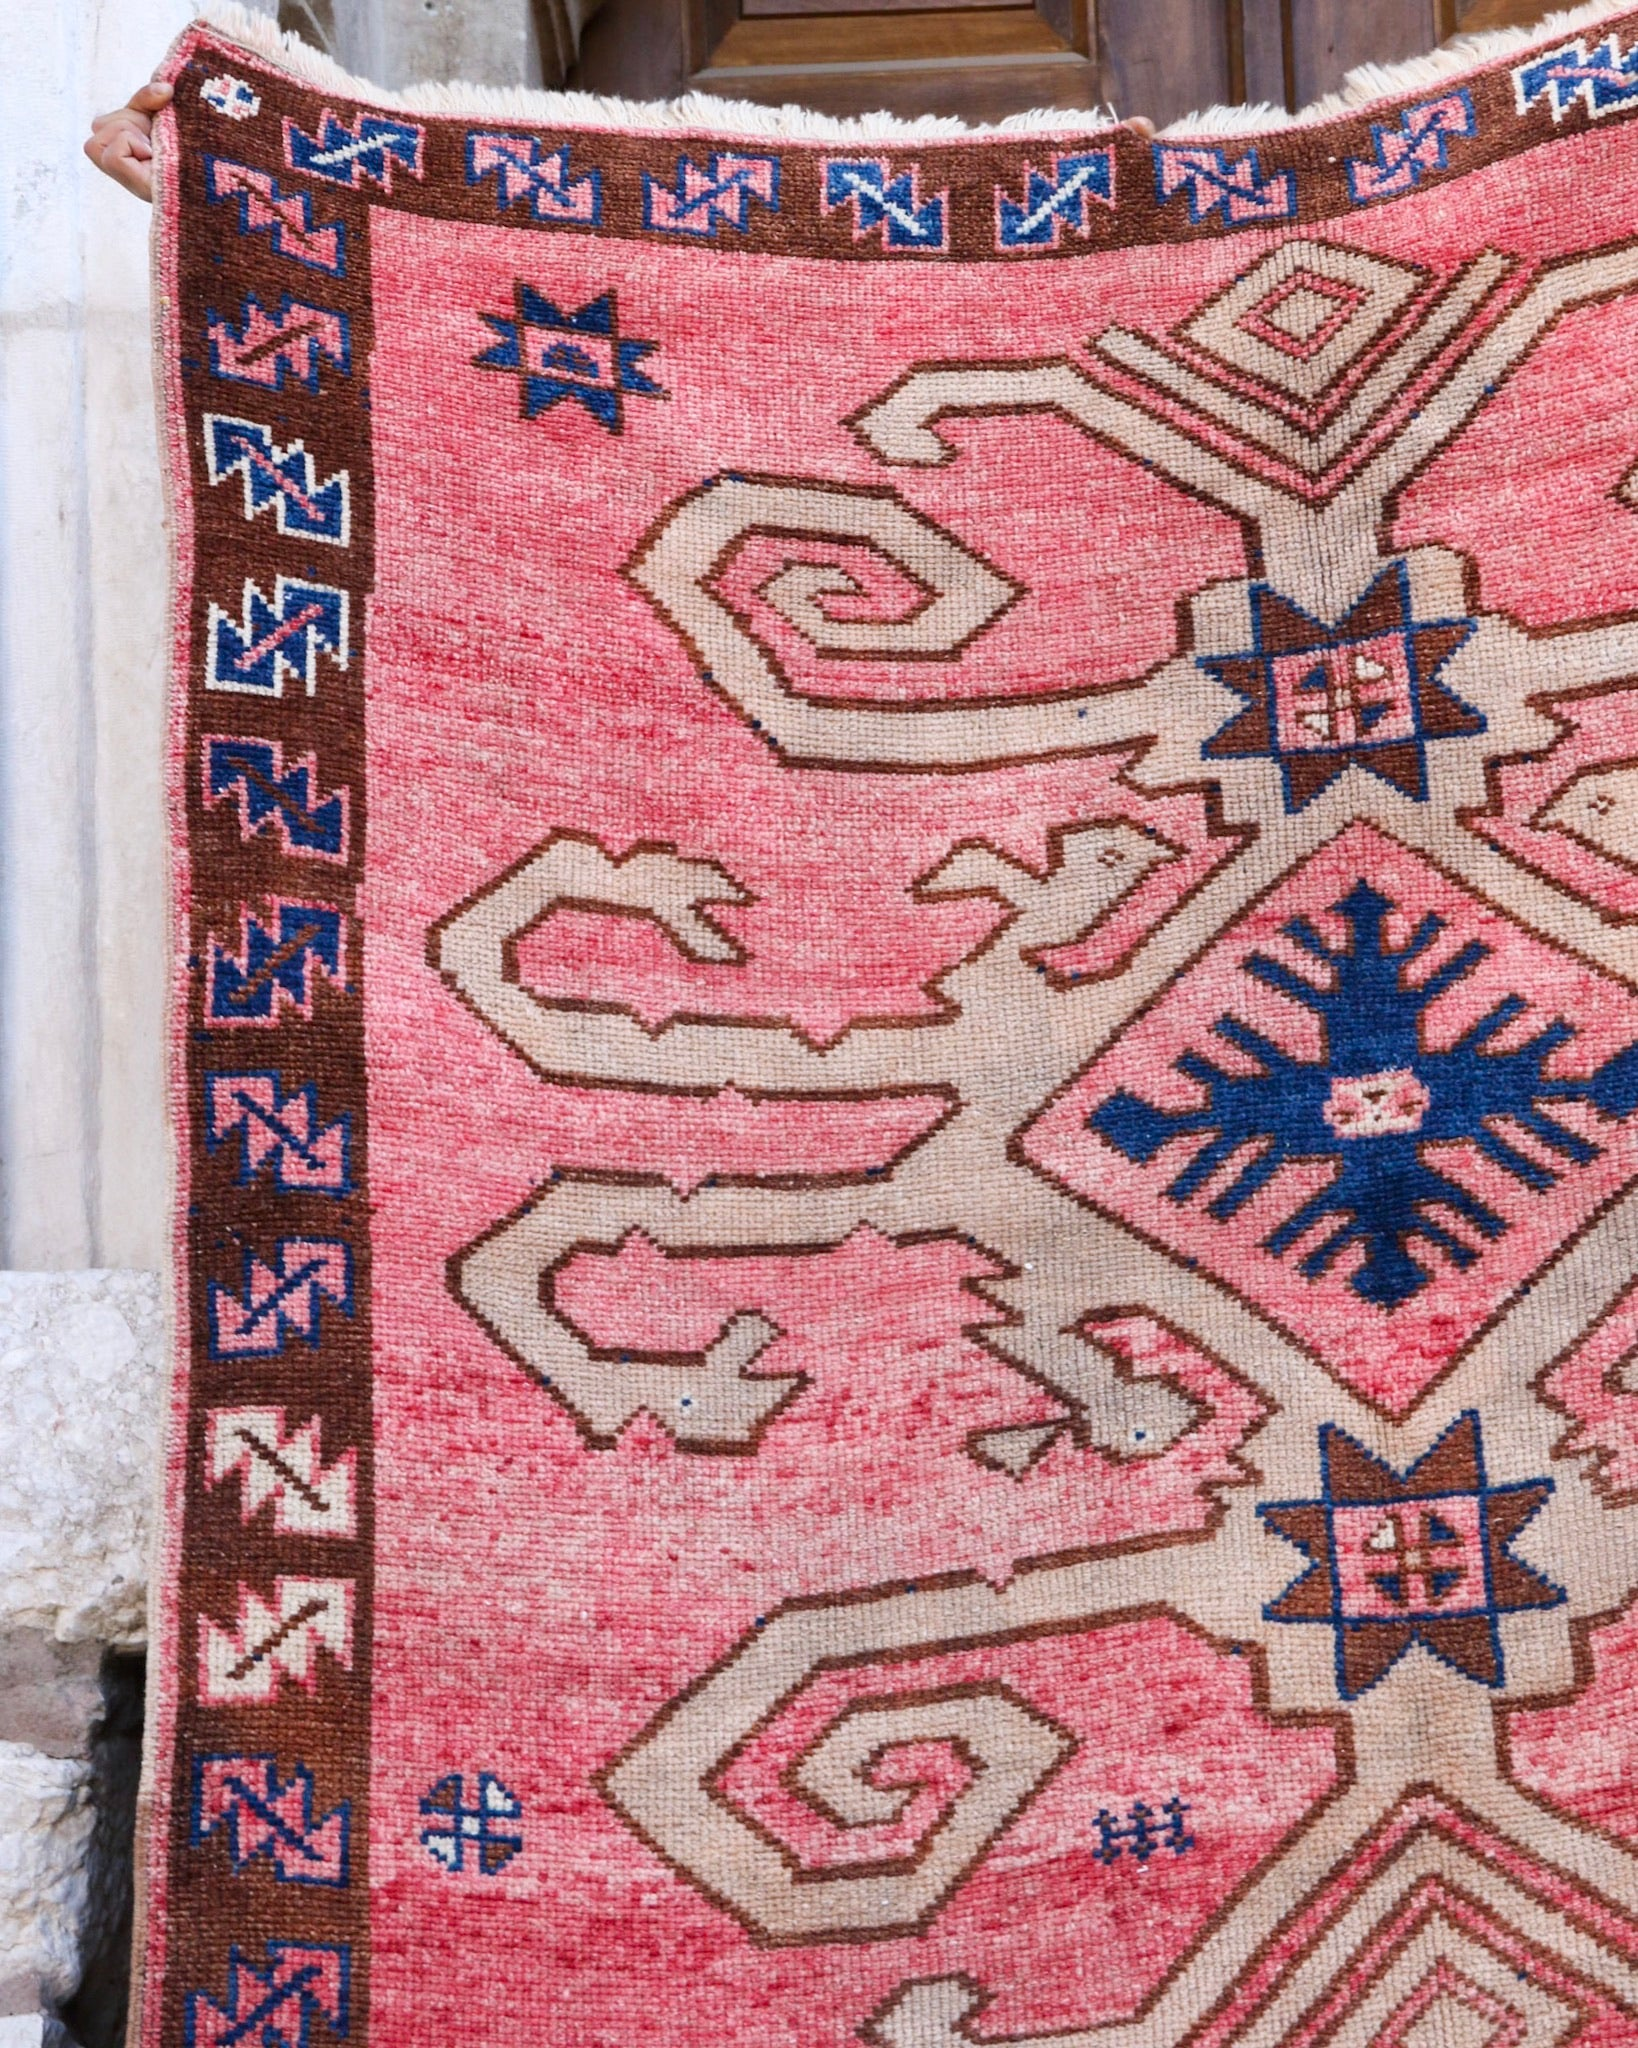 ON HOLD NOT AVAILABLE 1662 Nilay 5'8x10'9 Handwoven Vintage Rug